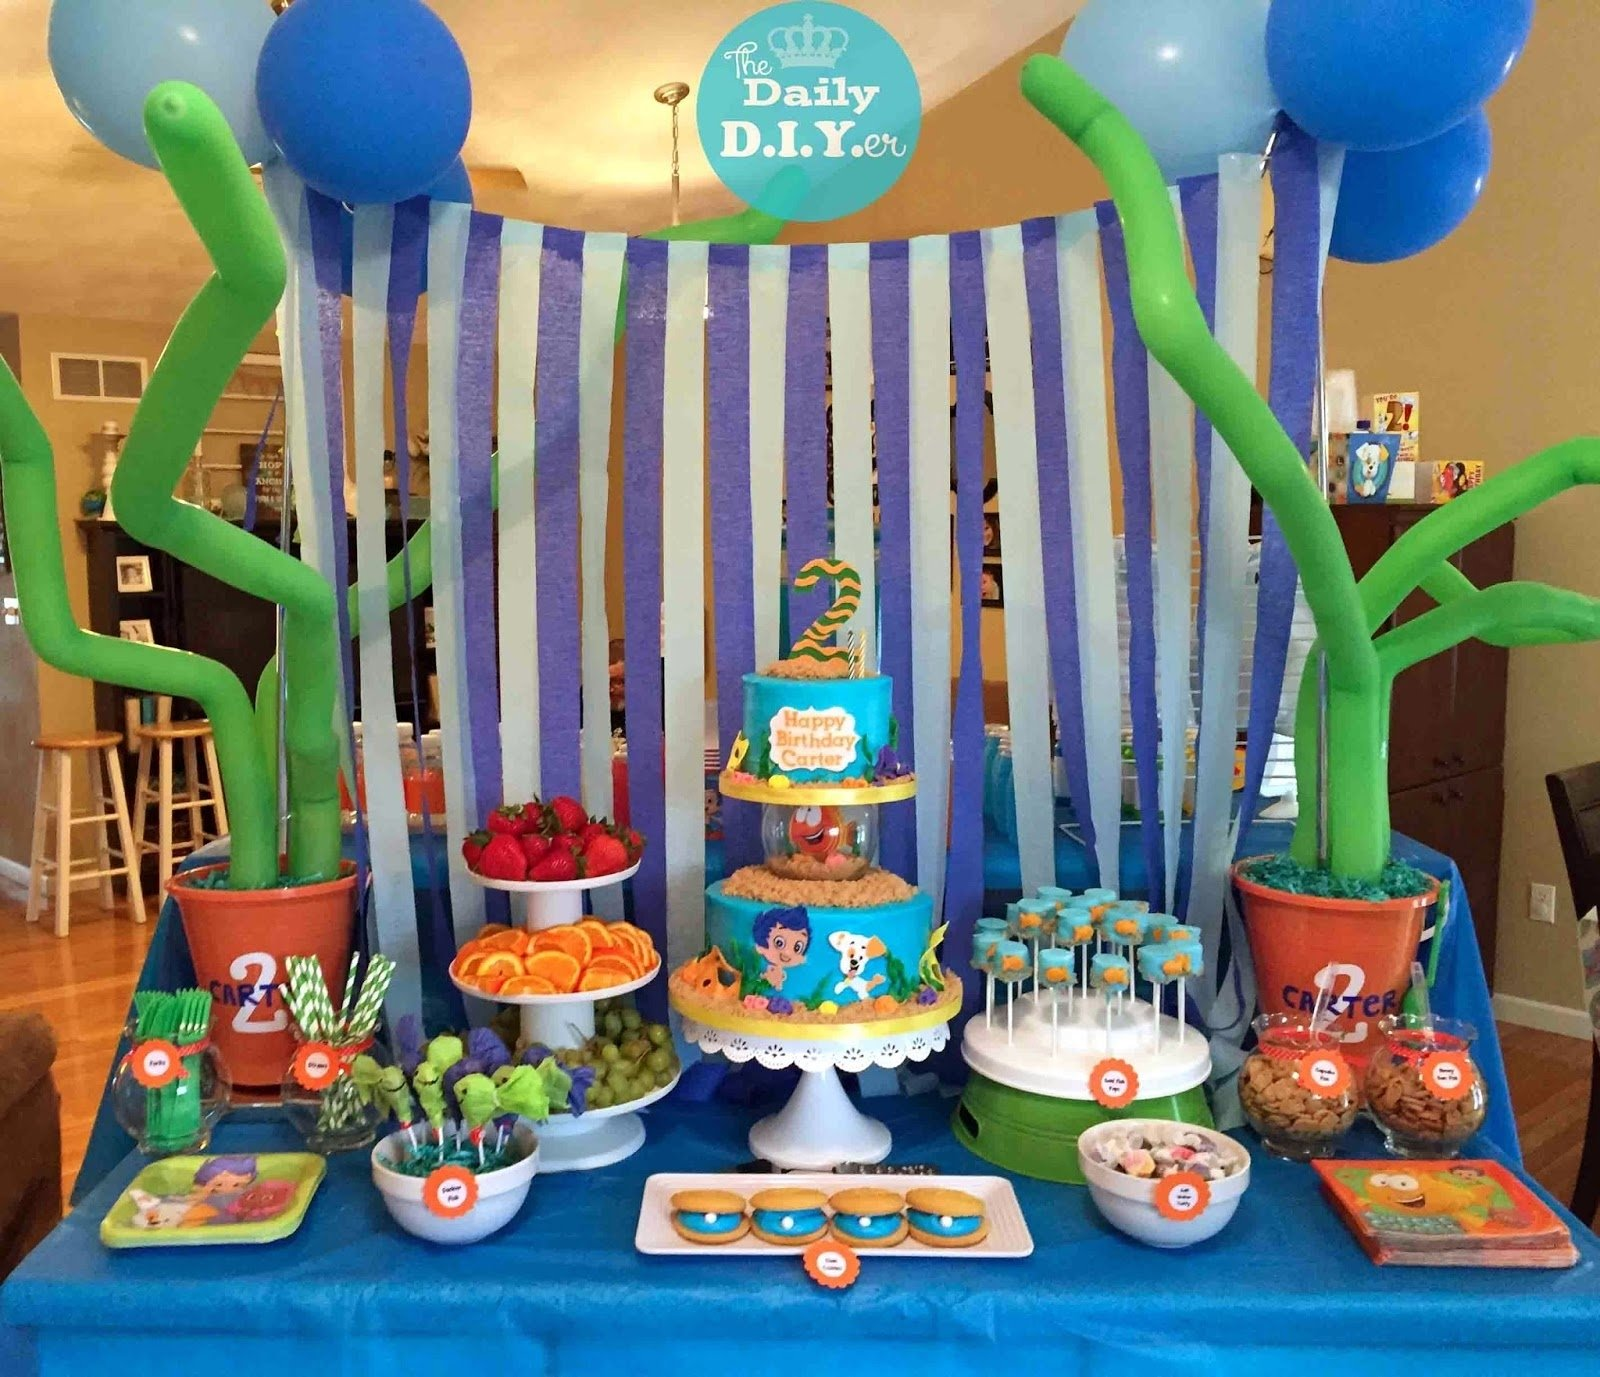 10 Perfect Bubble Guppies Party Favor Ideas the daily diyer bubble guppies party food 1 2020